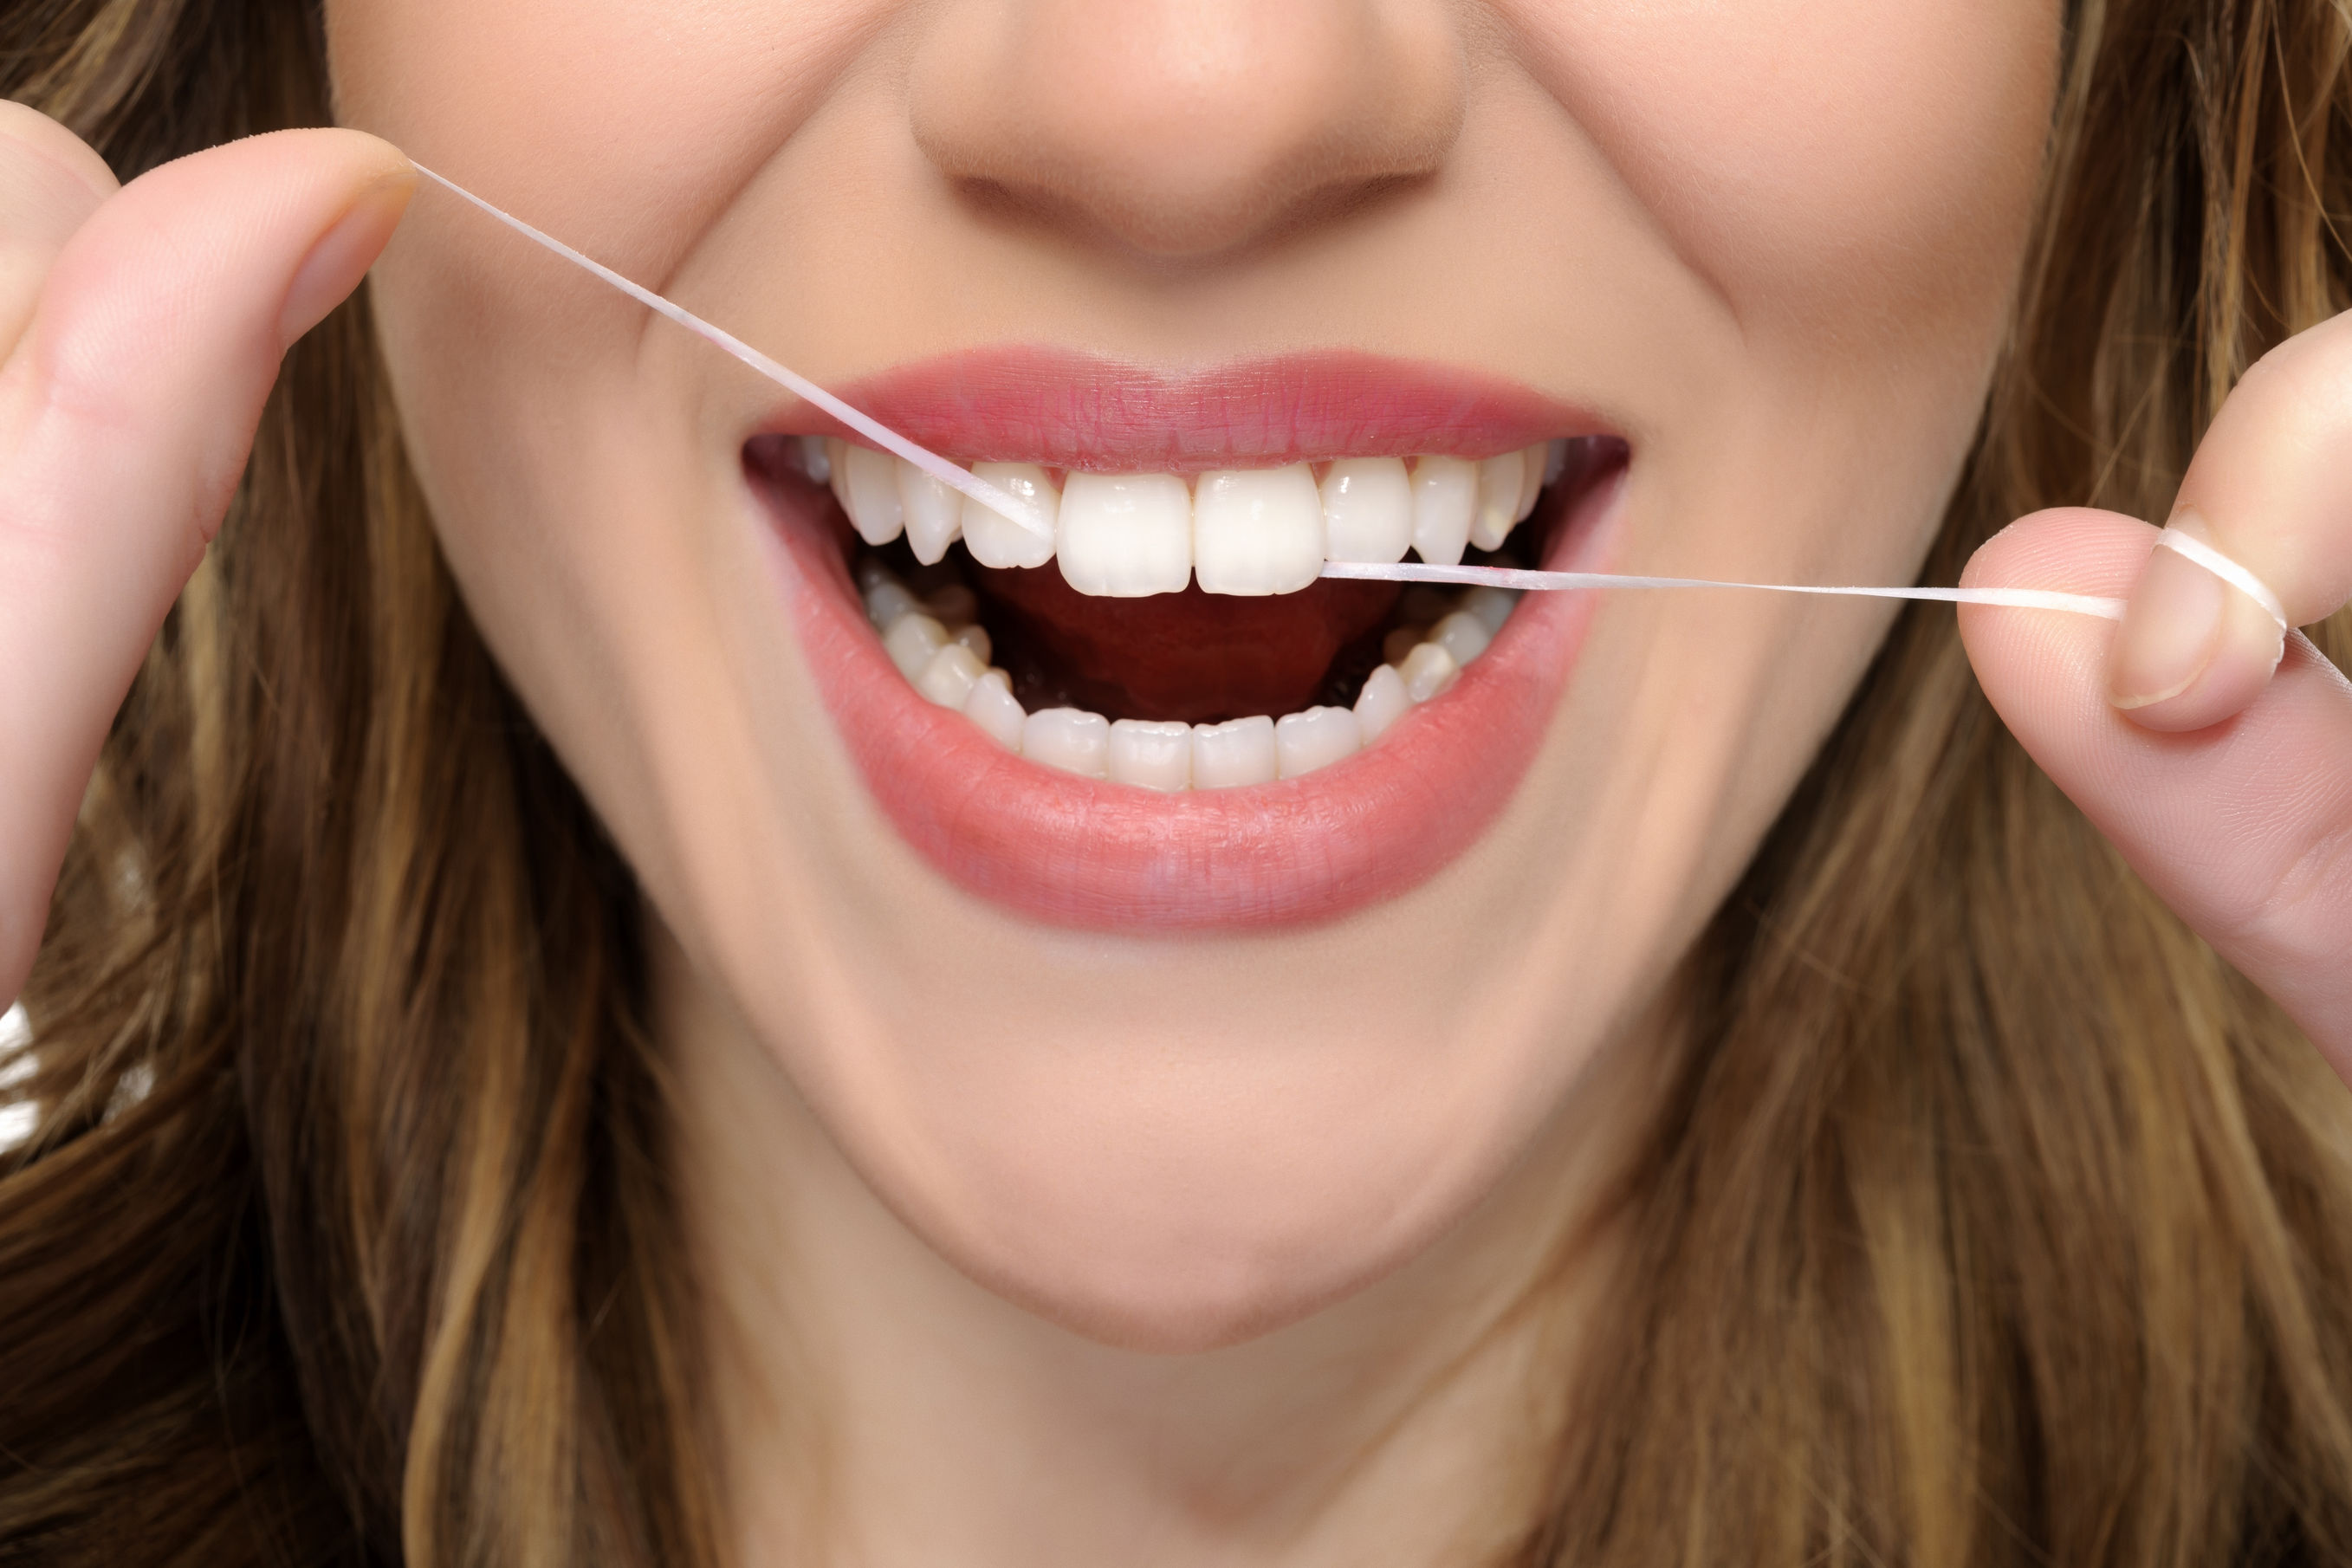 young woman mouth flossing her teeth.